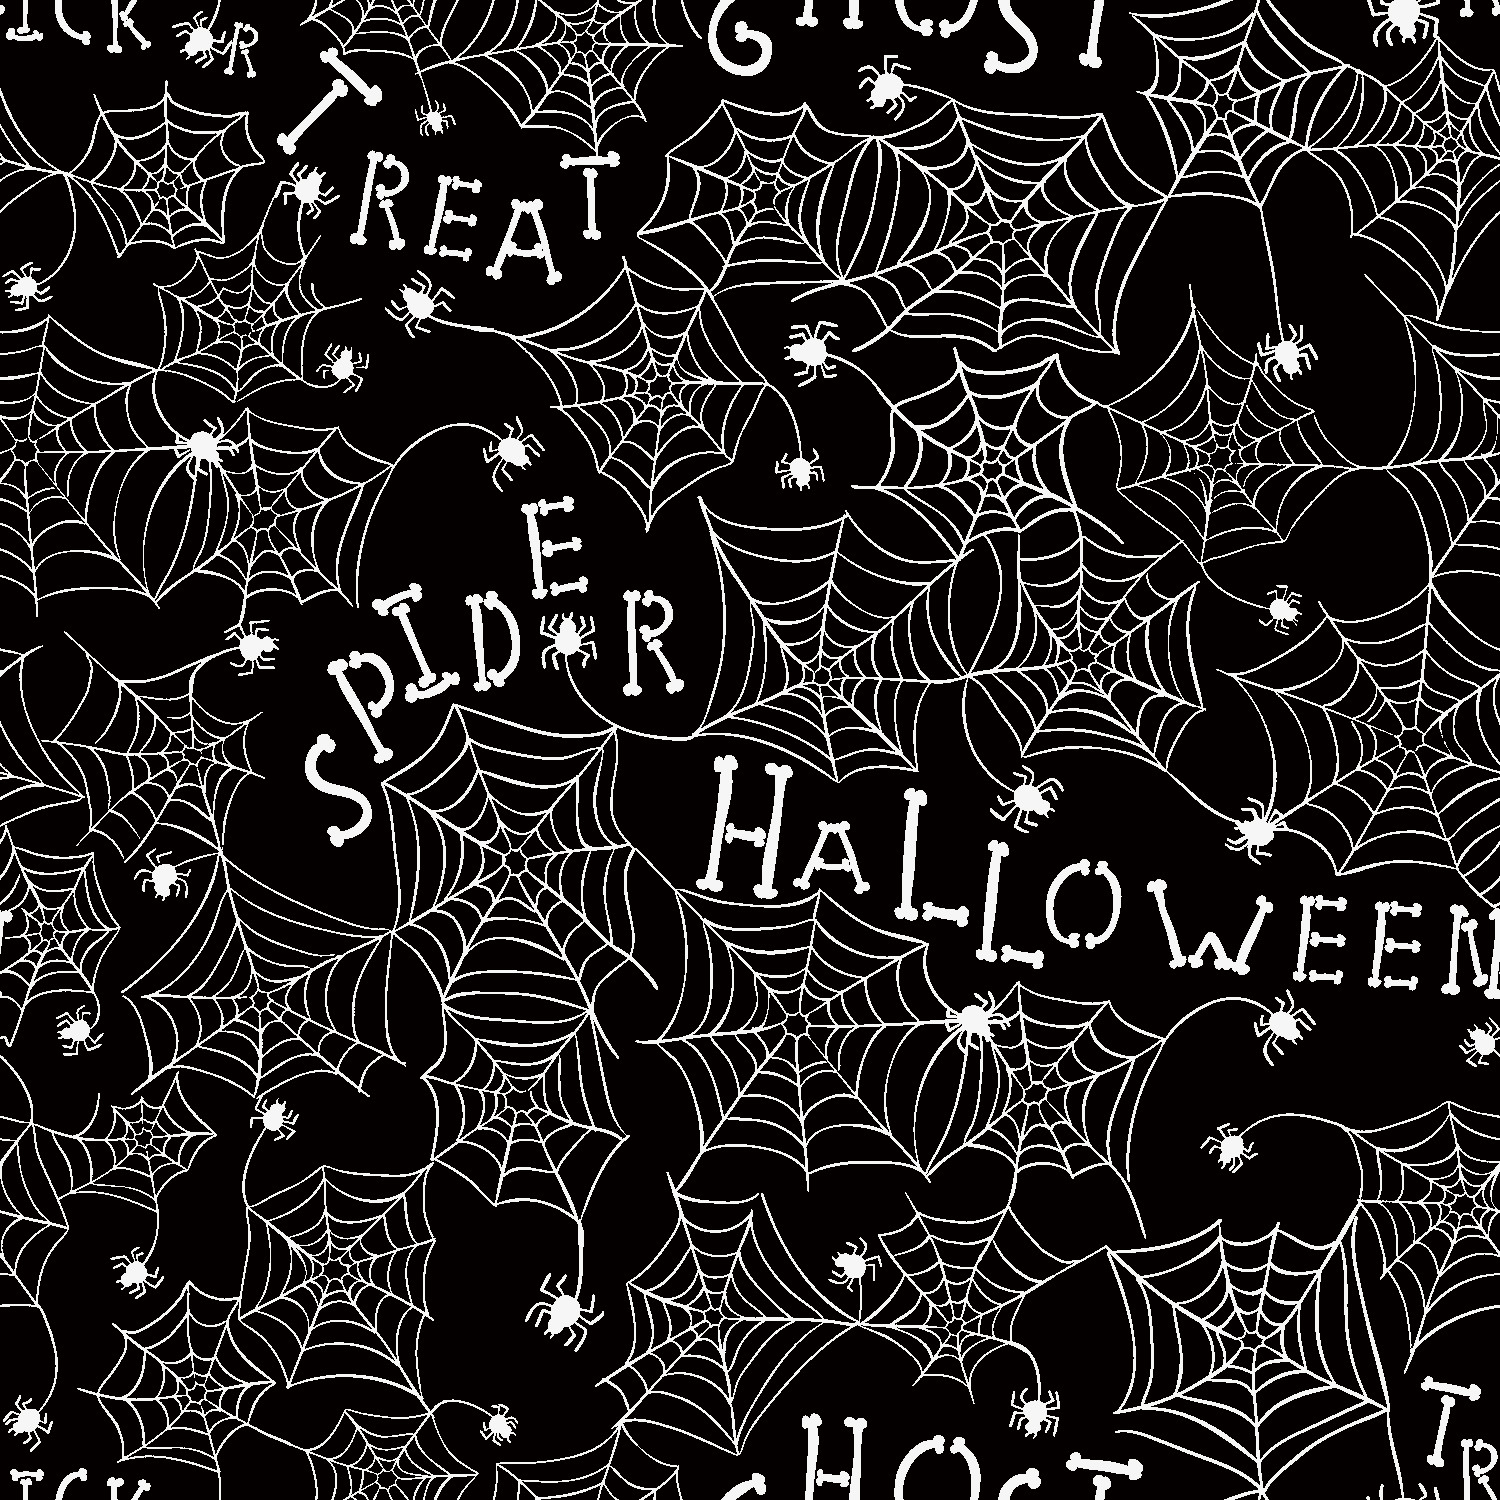 RTC HALLOWEEN FABRIC, WEB METALLIC, 100% COTTON, Quilt Crafts Fabric By The Yard